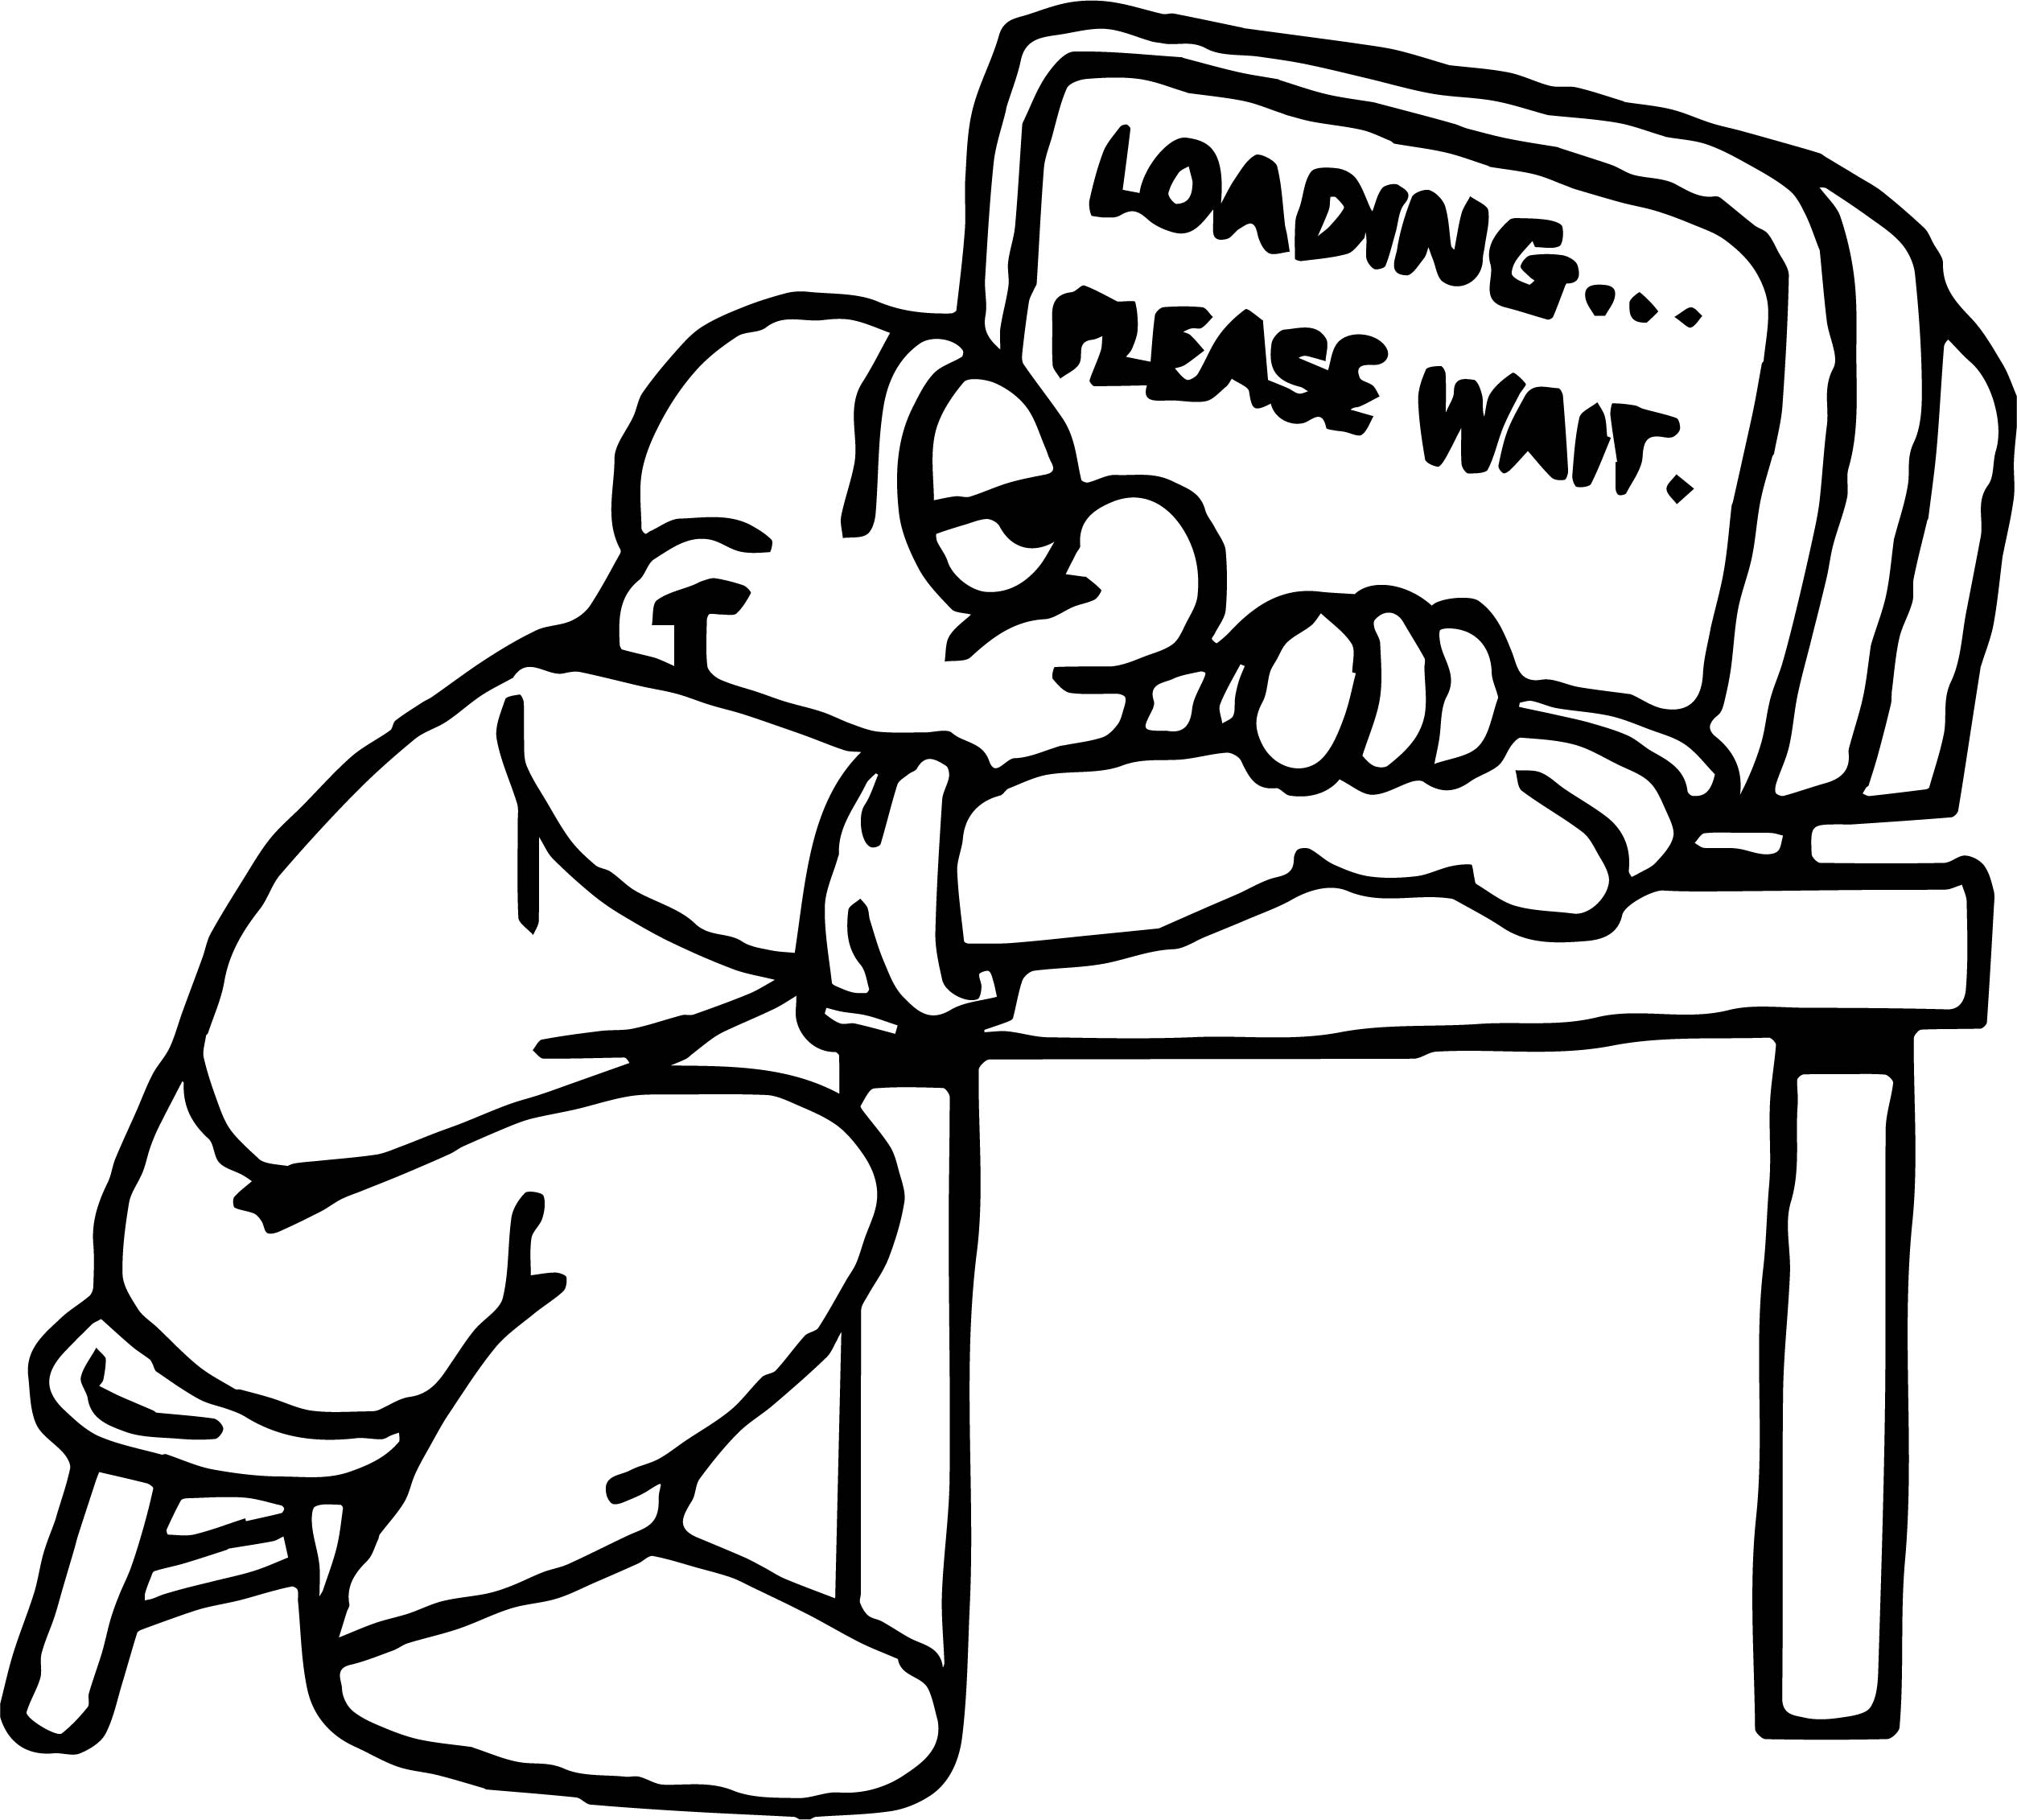 Man Computer Waiting Coloring Page